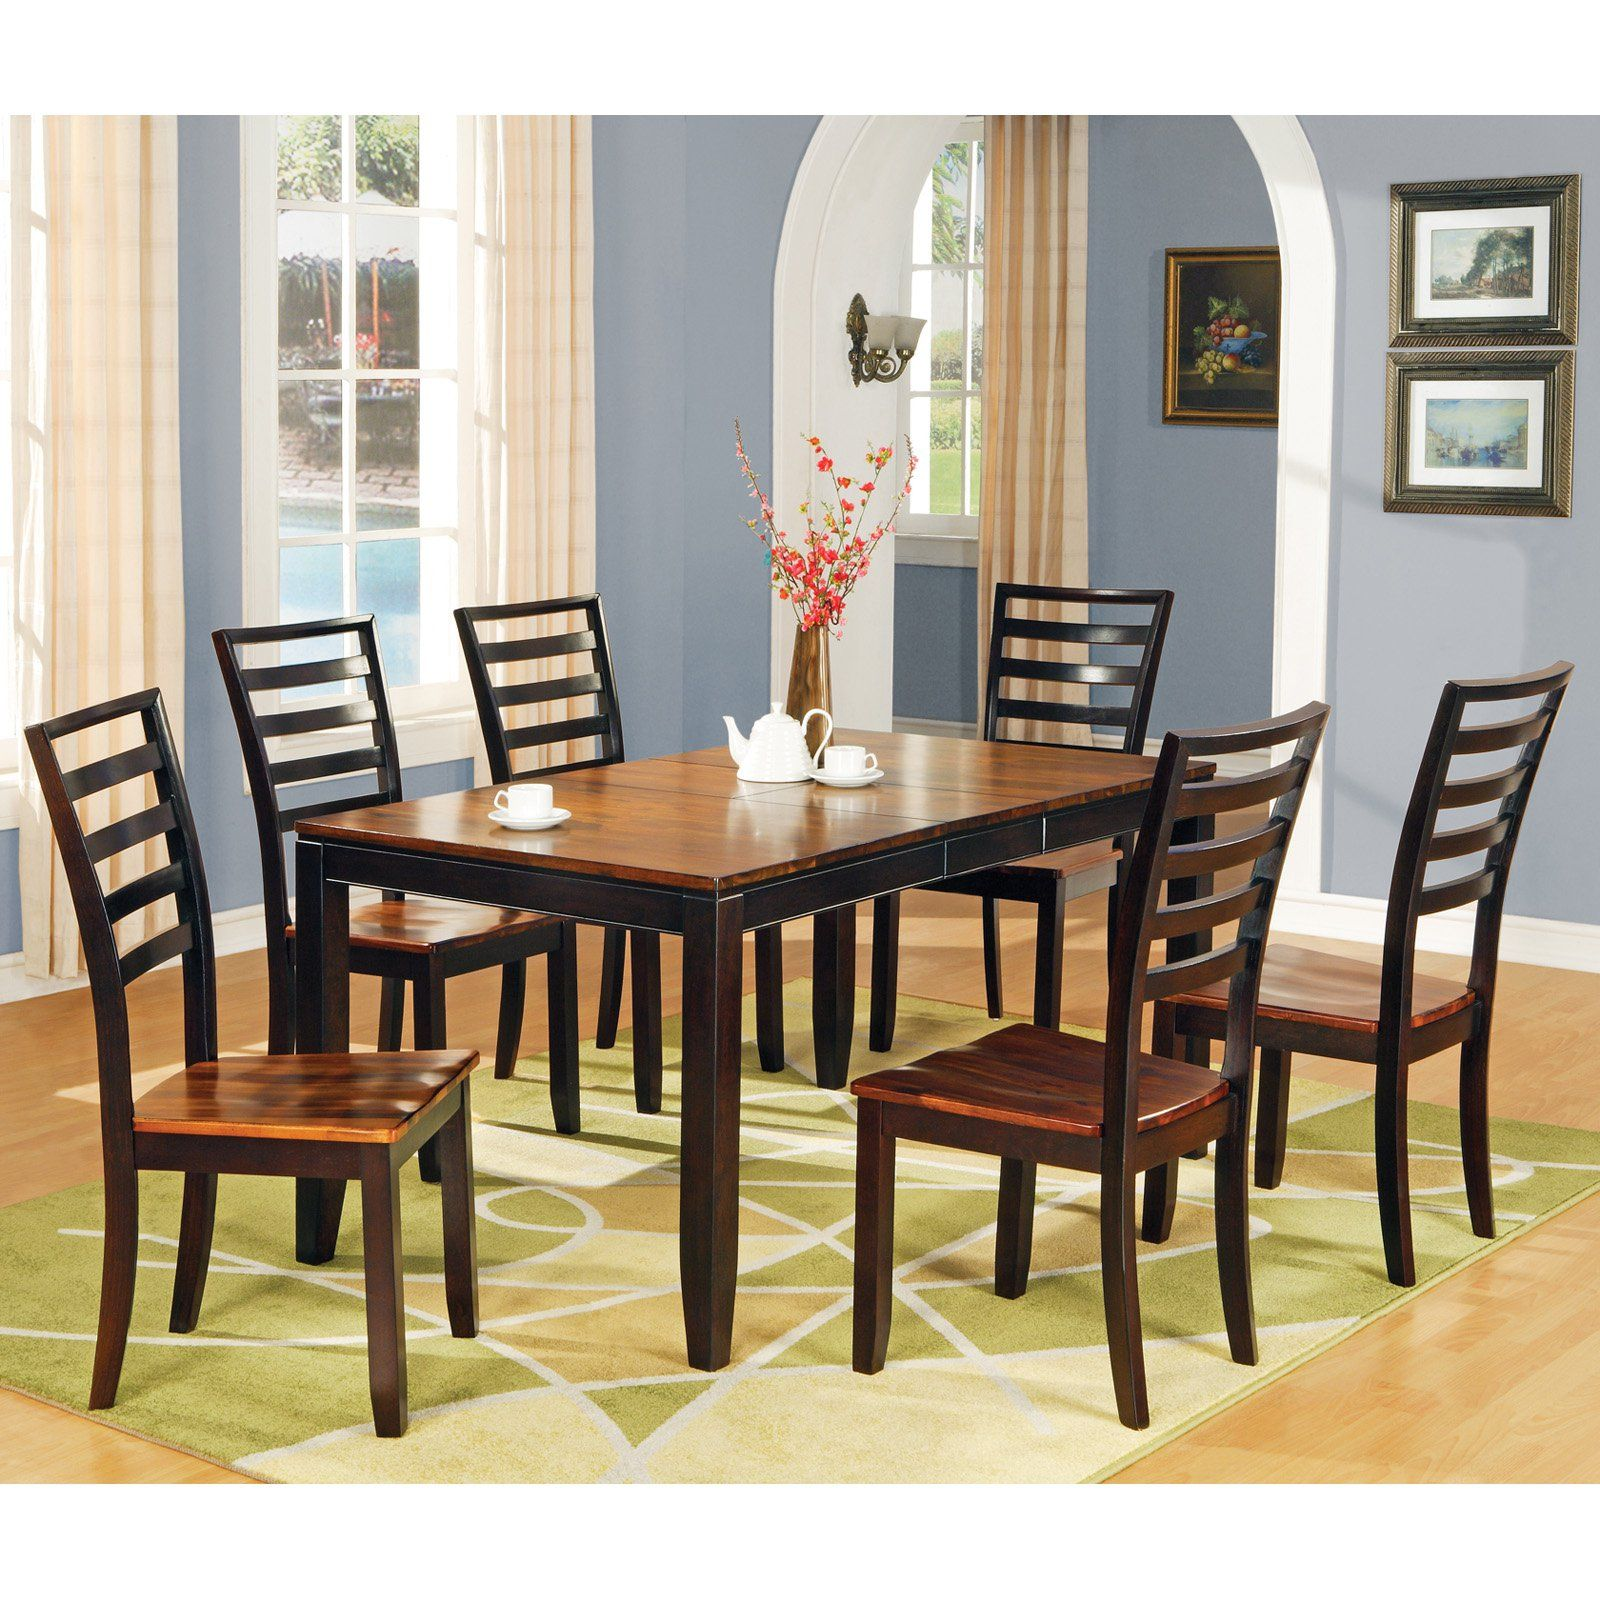 Steve Silver Abaco 7 Piece Dining Table Set Dining Room Sets